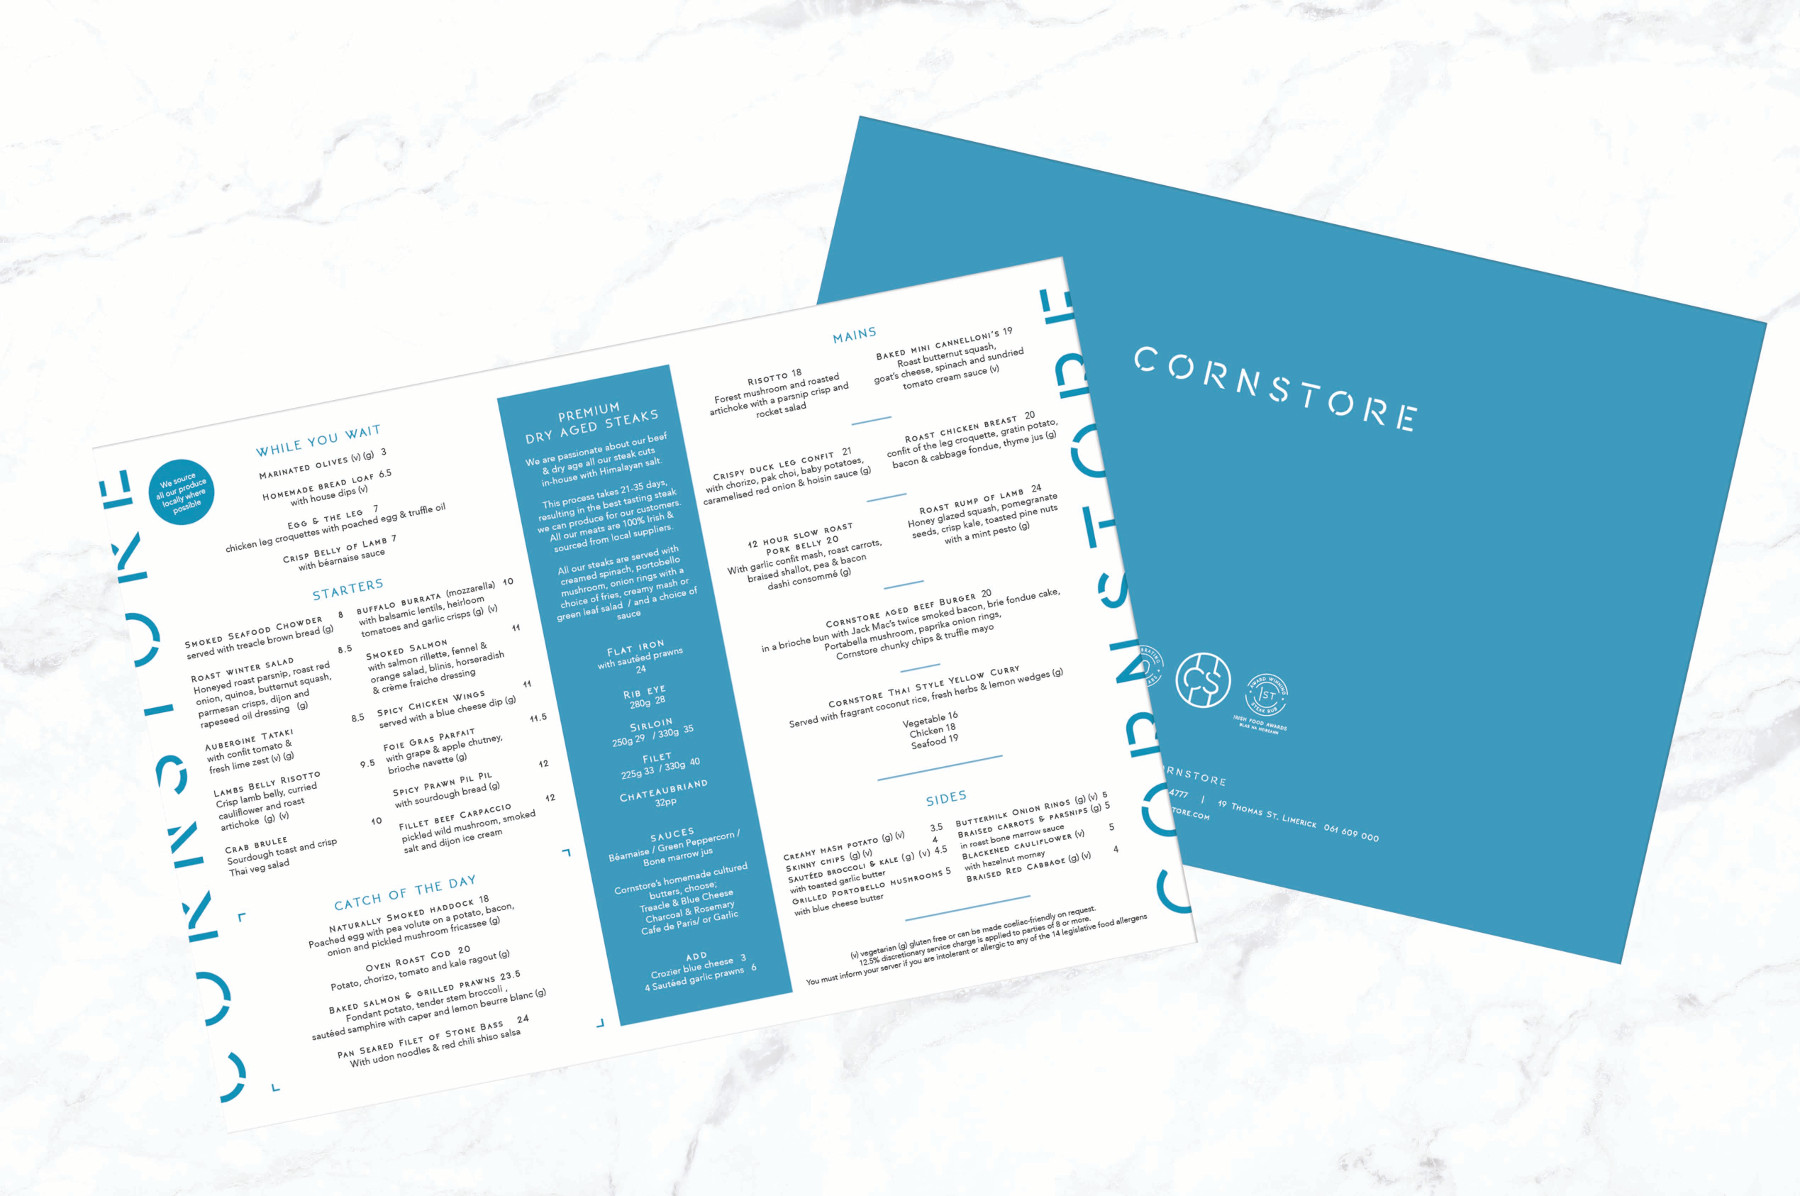 Limelight Media Cork | Cornstore | PR agency, Branding, Advertising,  Cork